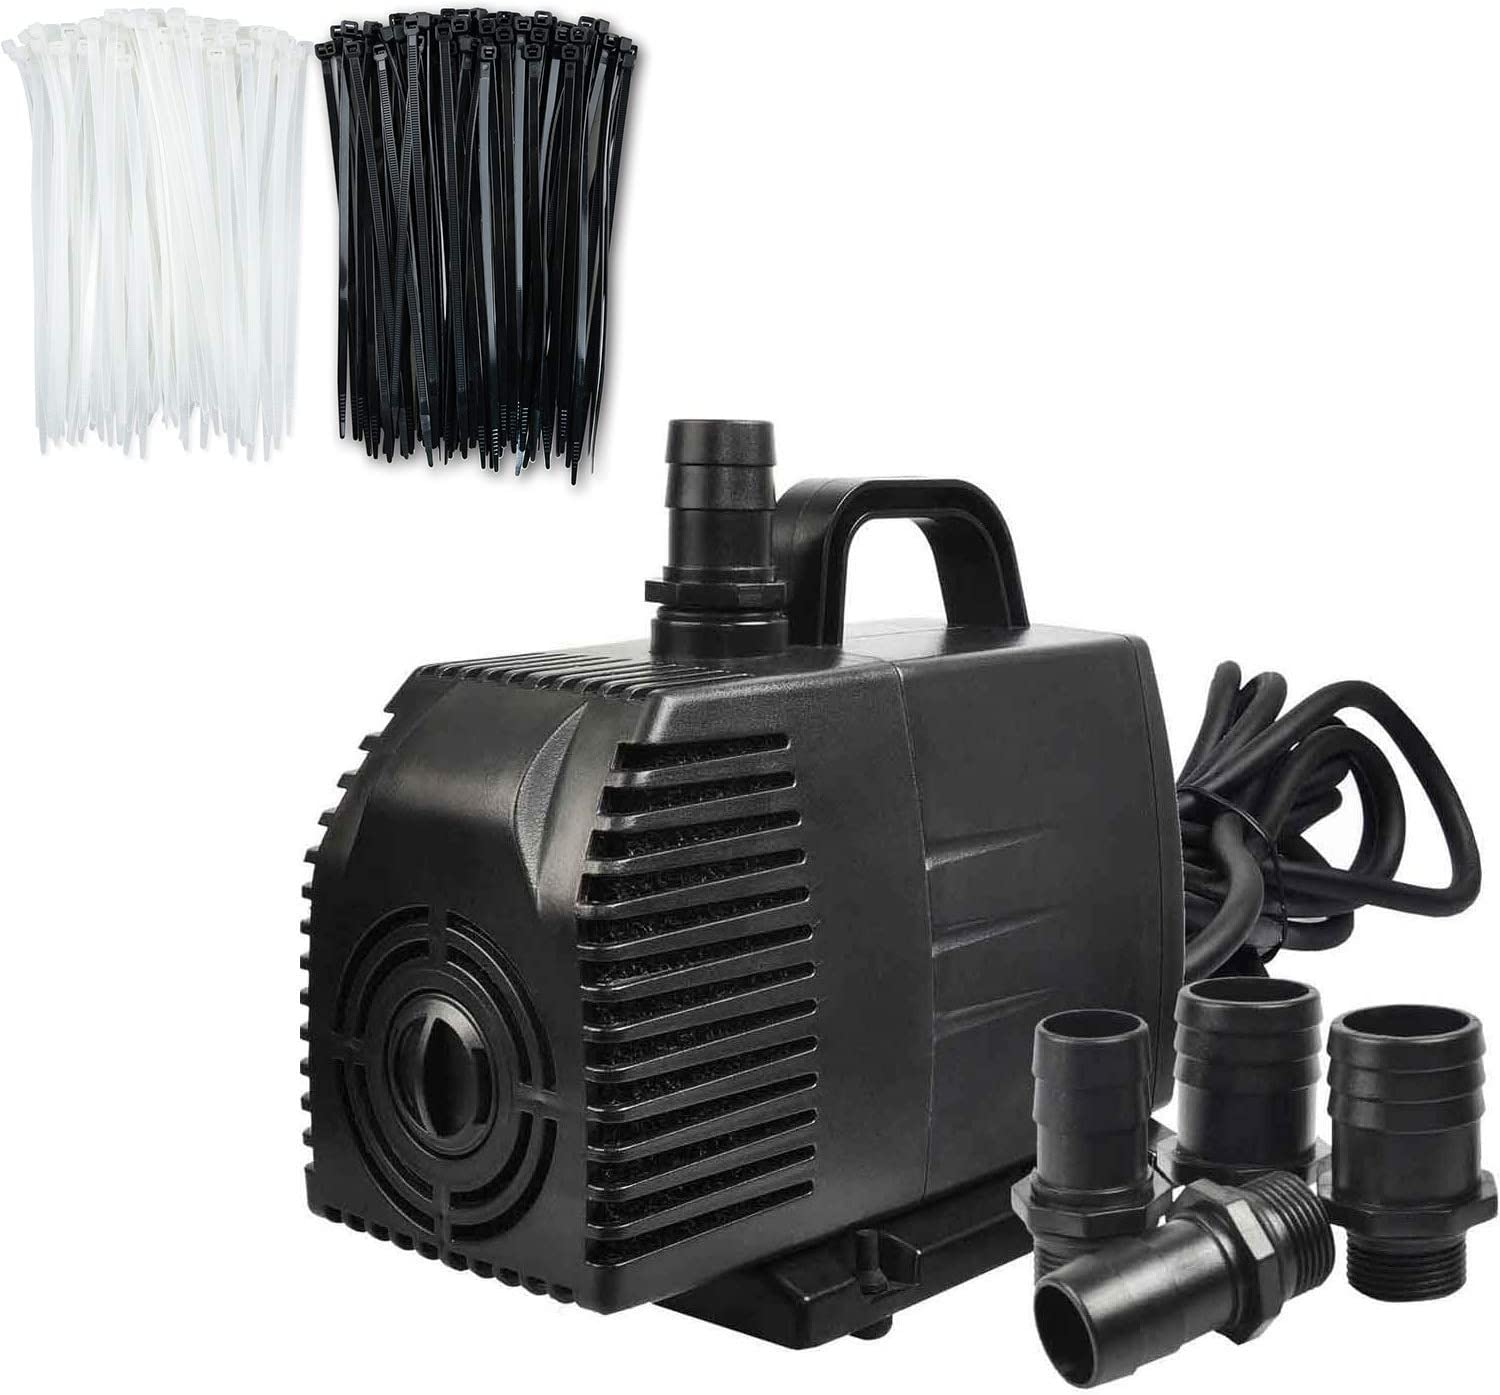 Simple Deluxe 1056 GPH Shipping included Submersible Water Pump with 15' for Cord Max 84% OFF